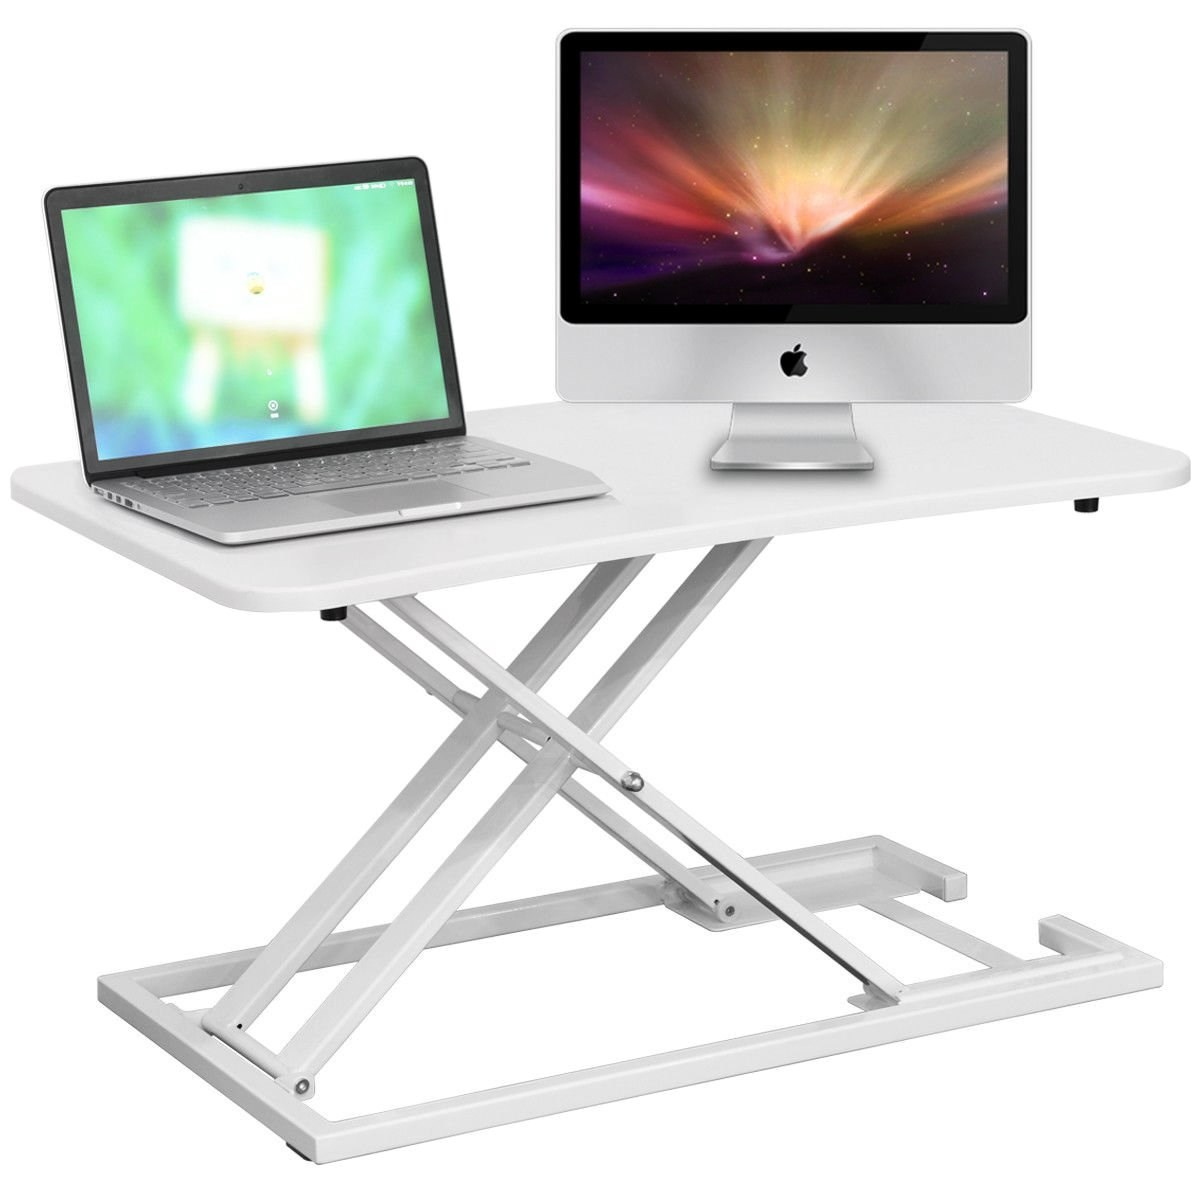 D,2019 Stand-up Computer Lifting Table Foldable Computer Desk Stand Lift Table Work Station Stand With Standing Desk